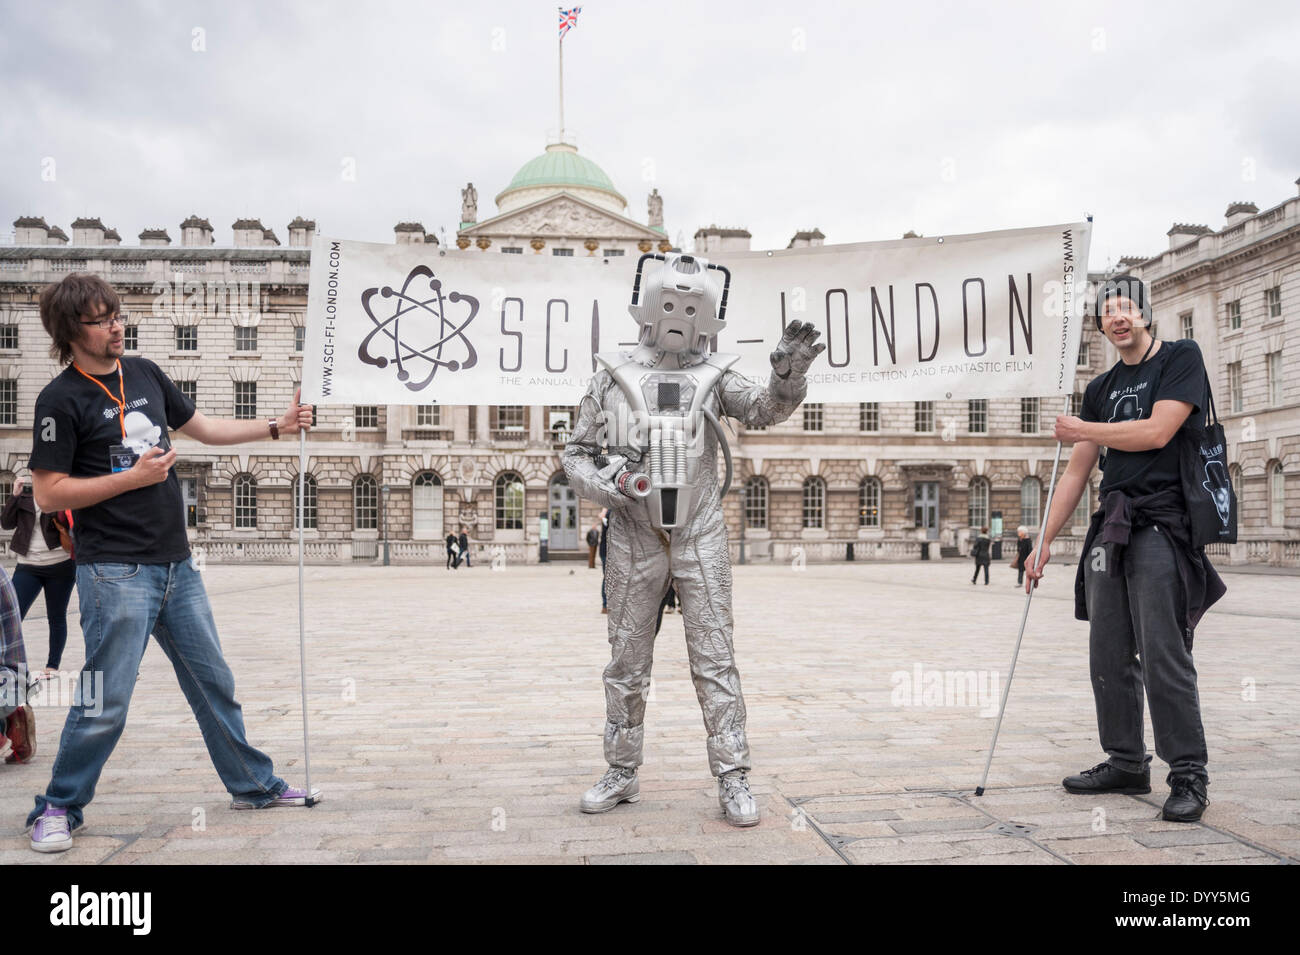 London, 27 April 2014 - people dressed as their favourite sci-fi characters take part in the Sci-Fi London 2014 costume parade starting at Somerset House and finishing at the BFI on the South Bank.  A cyberman at Somerset House.      Credit:  Stephen Chung/Alamy Live News - Stock Image